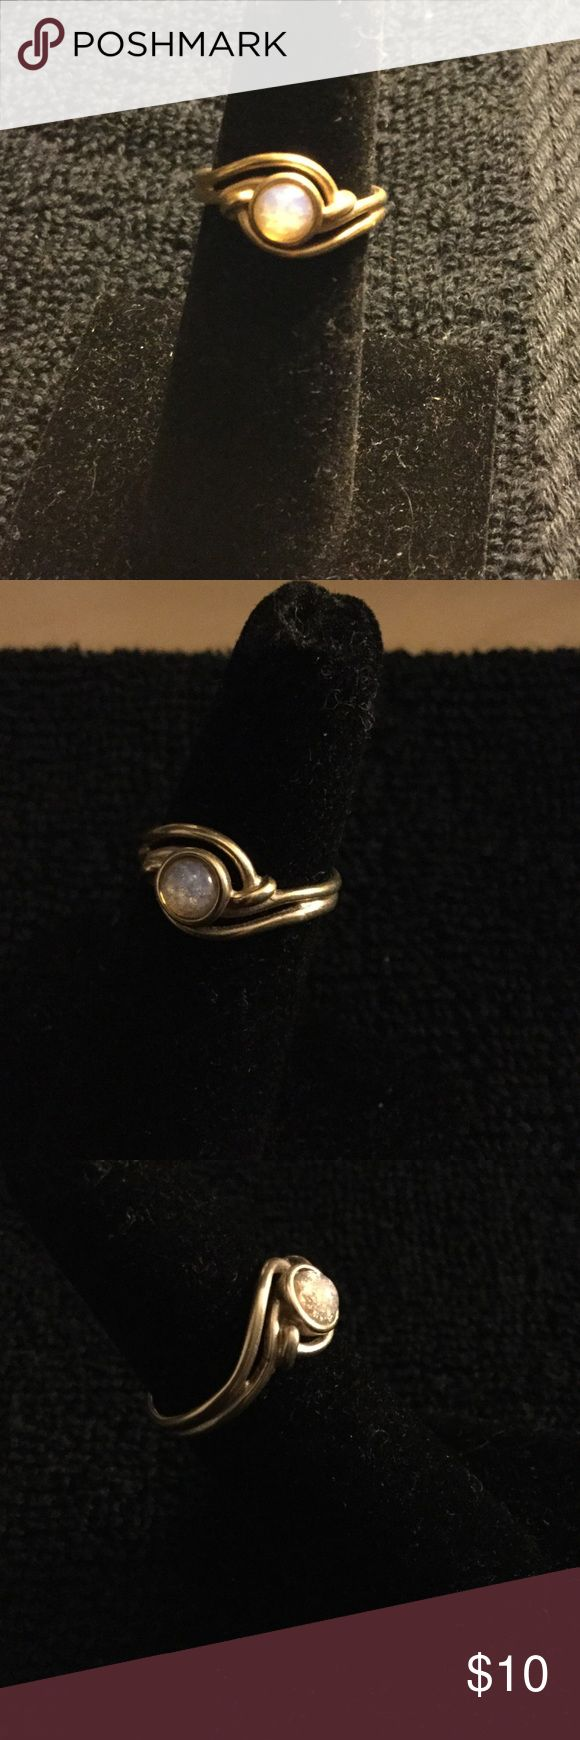 Vintage Avon Ring Vintage Gold tone Avon Ring, Size 6, with stone Avon Jewelry Rings